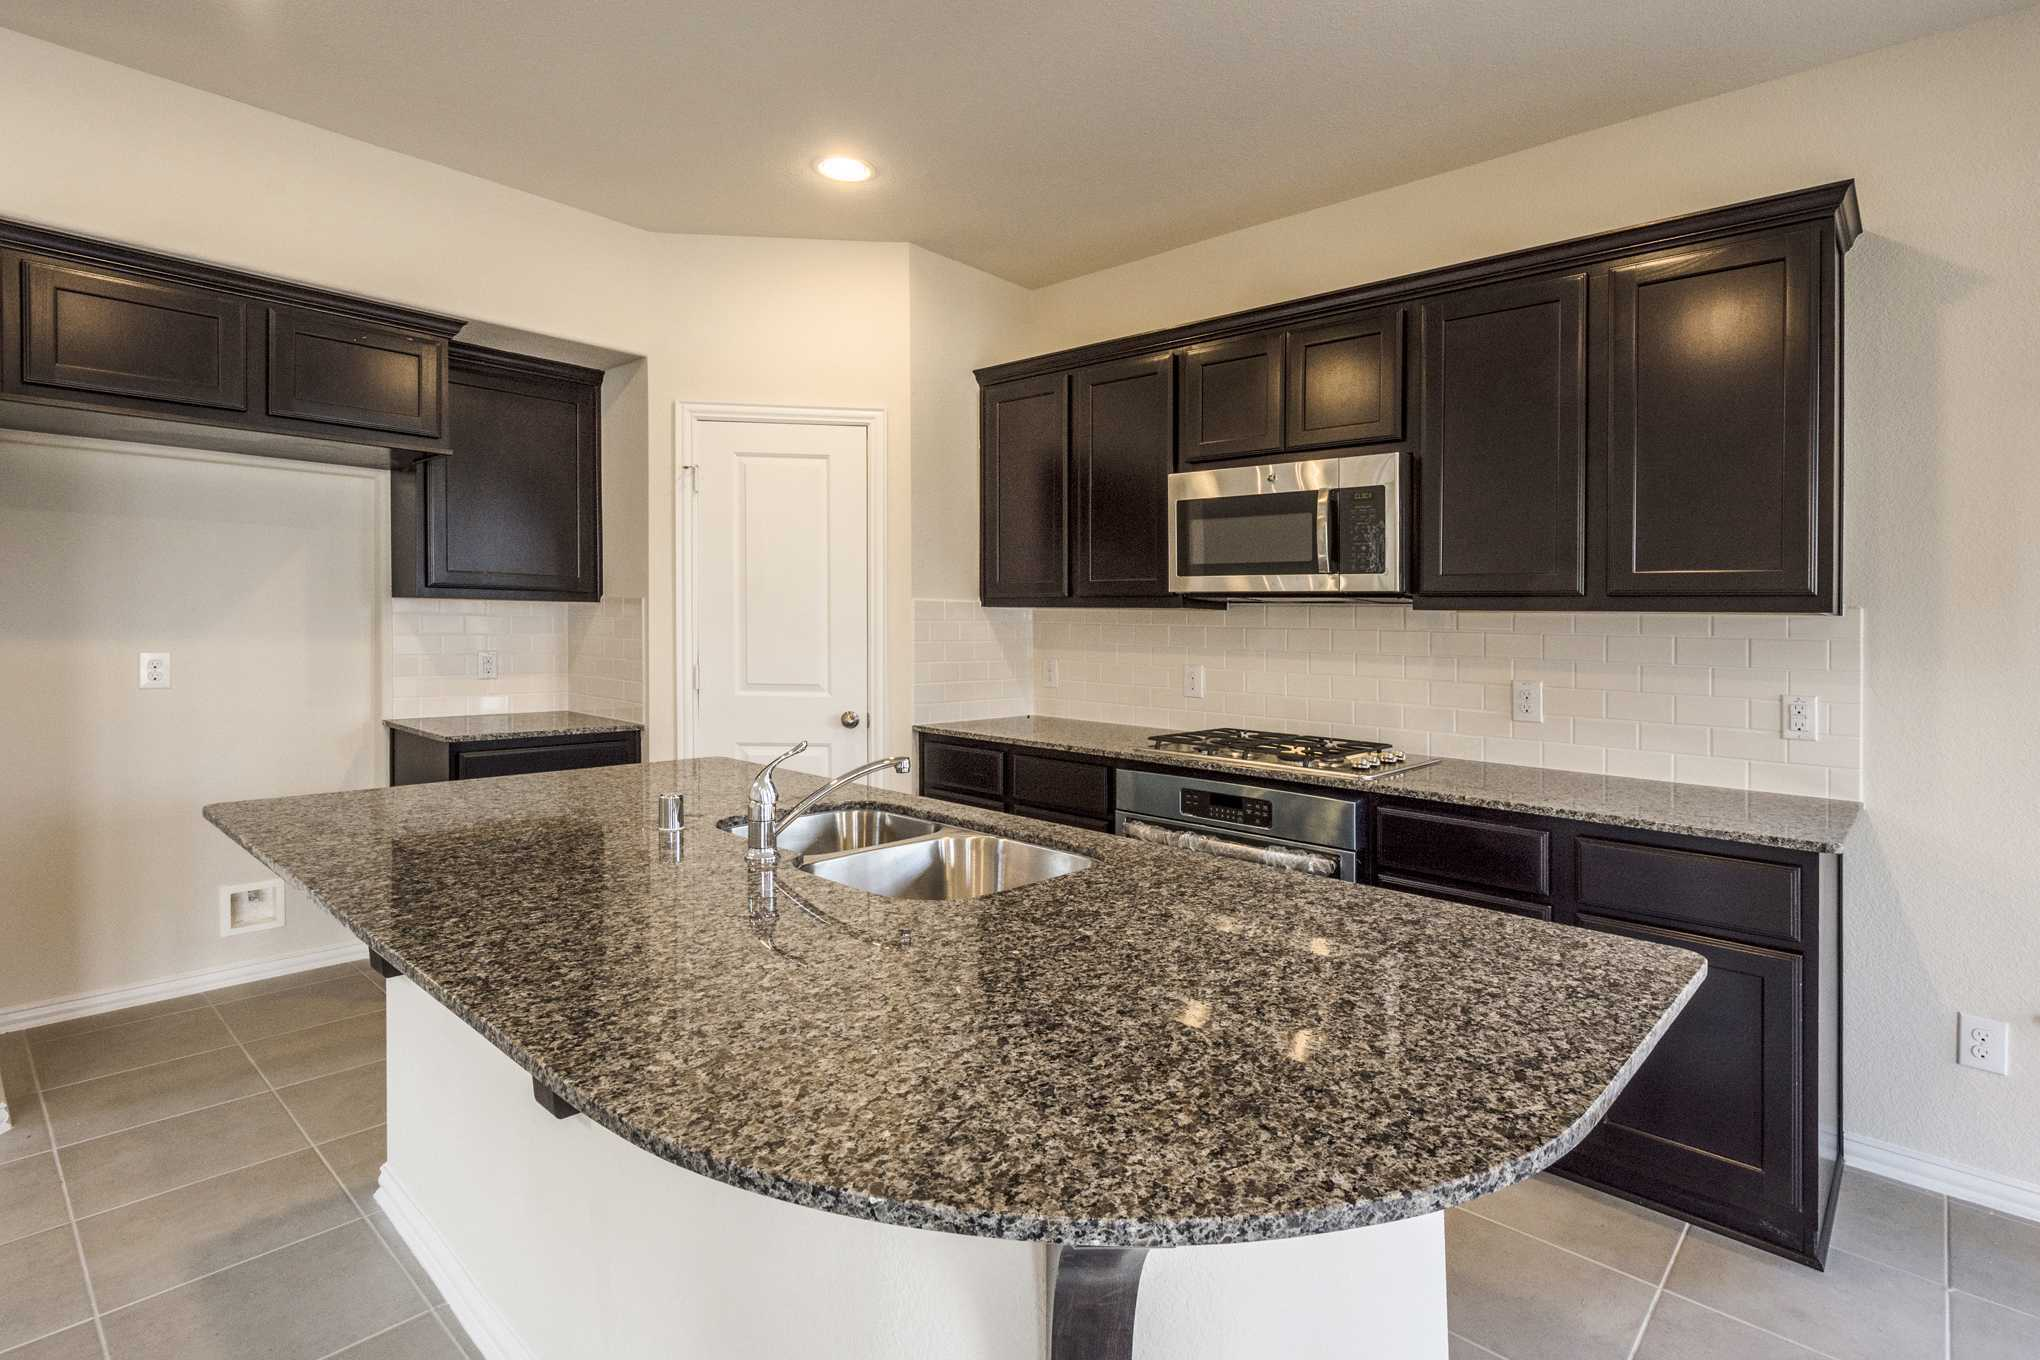 Kitchen featured in the Plan Cotswold By Highland Homes in San Antonio, TX